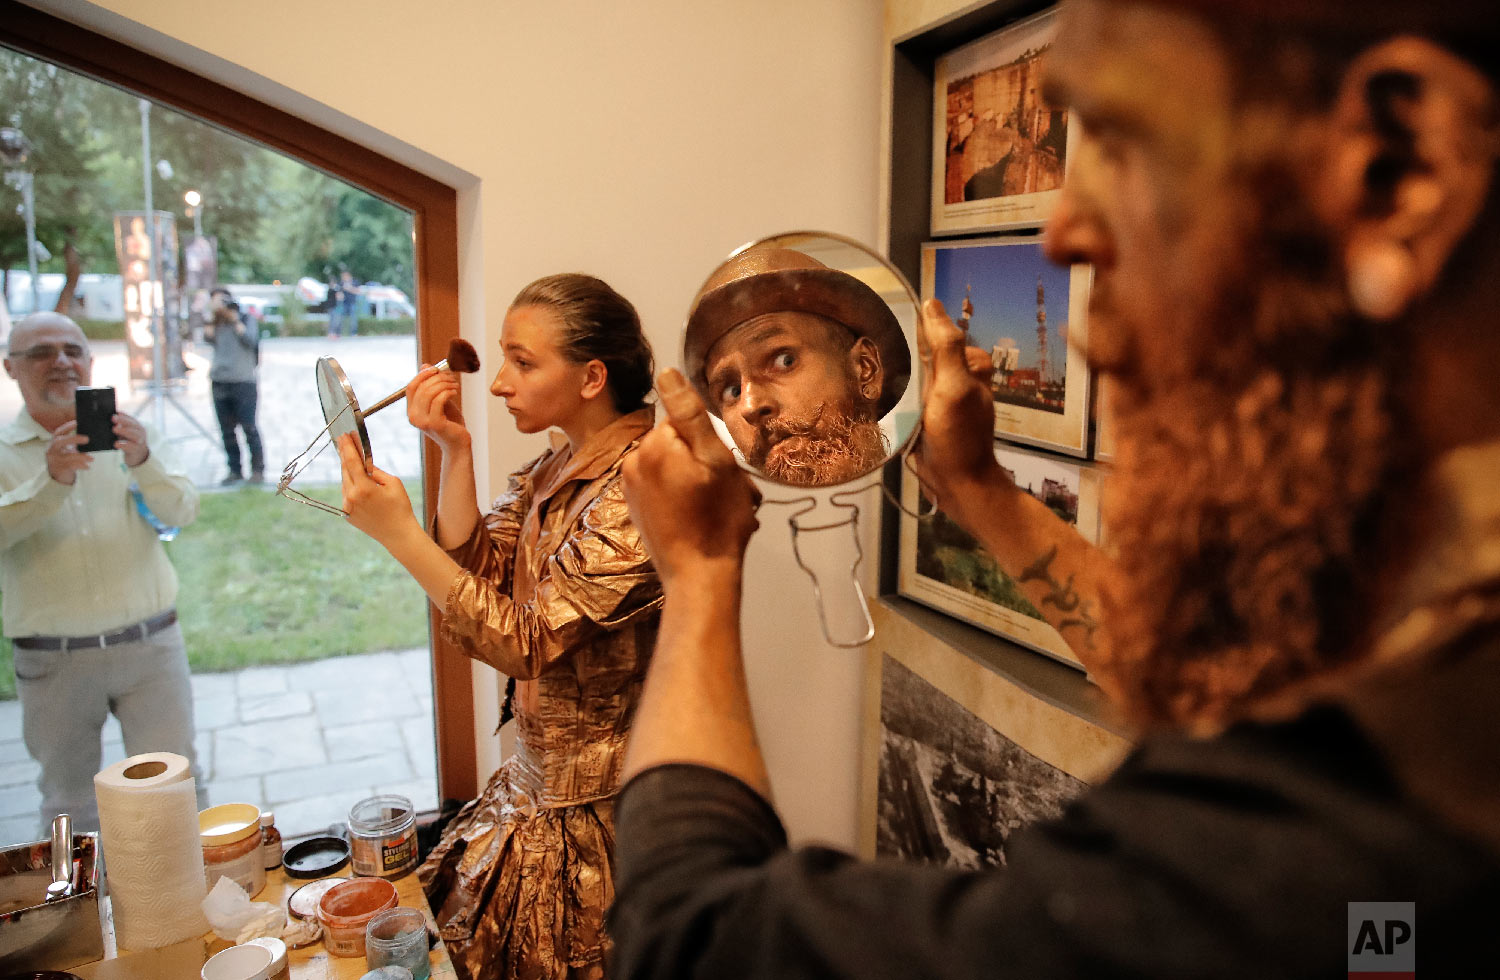 Artists of Ukraine's Artel Myth theatre apply make-up before performing in the Living Statues International Festival, in Bucharest, Romania in Tuesday, May 22, 2018 (AP Photo/Vadim Ghirda)